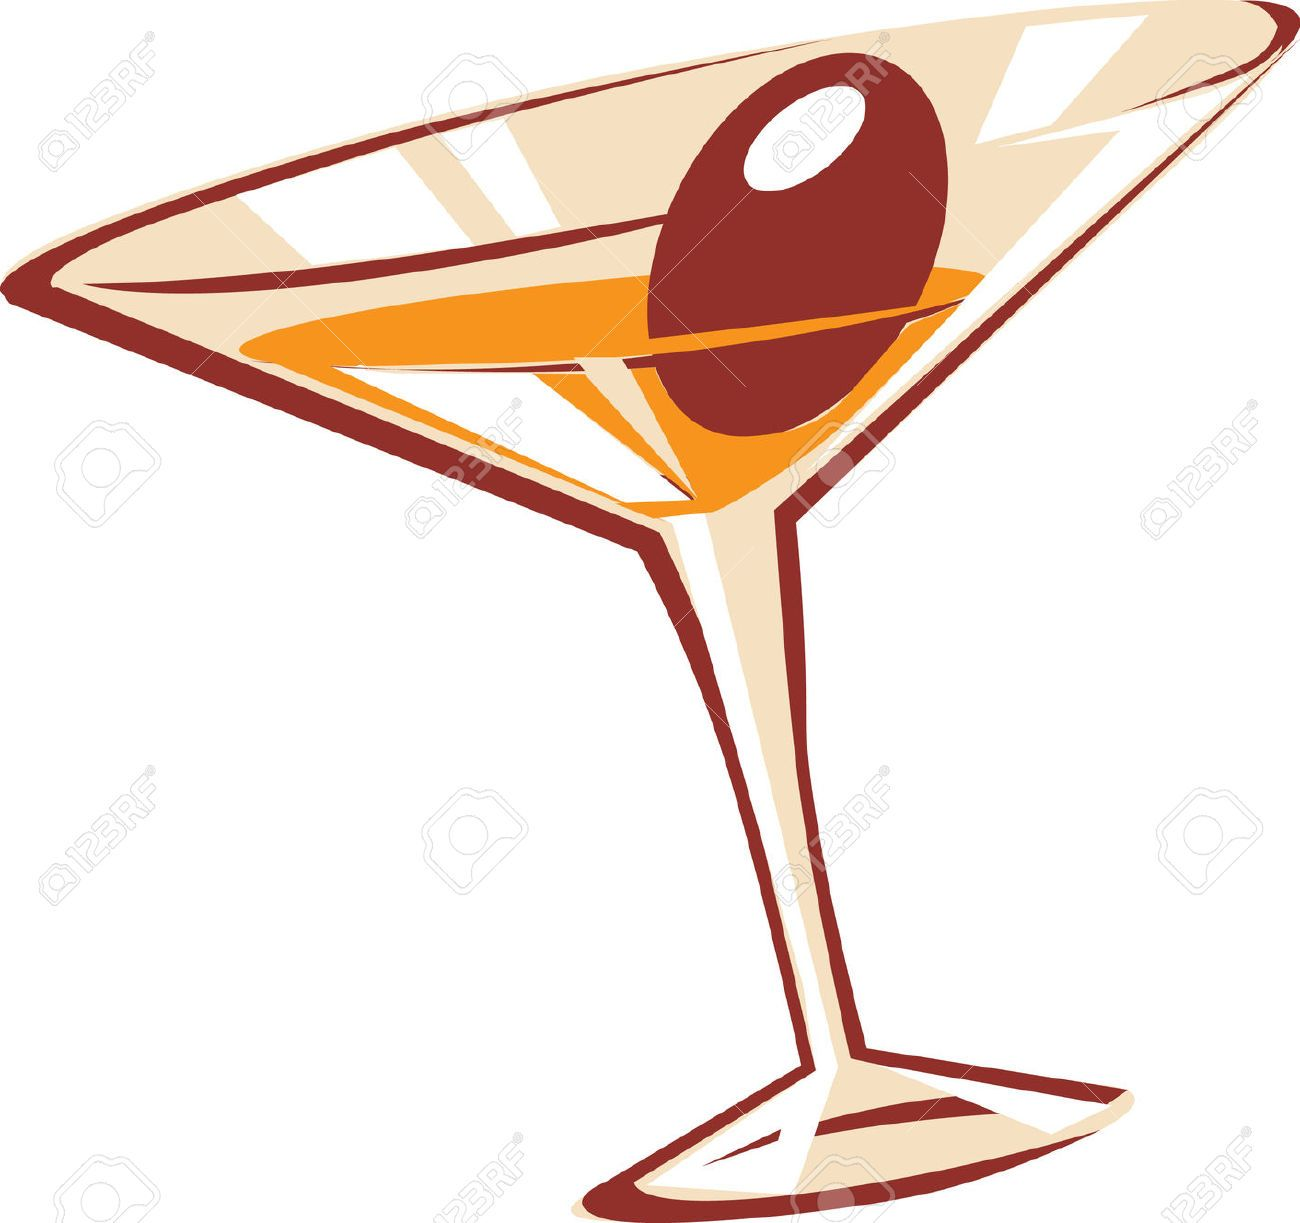 Martini Glass Stock Vector Illustration And Royalty Free ...